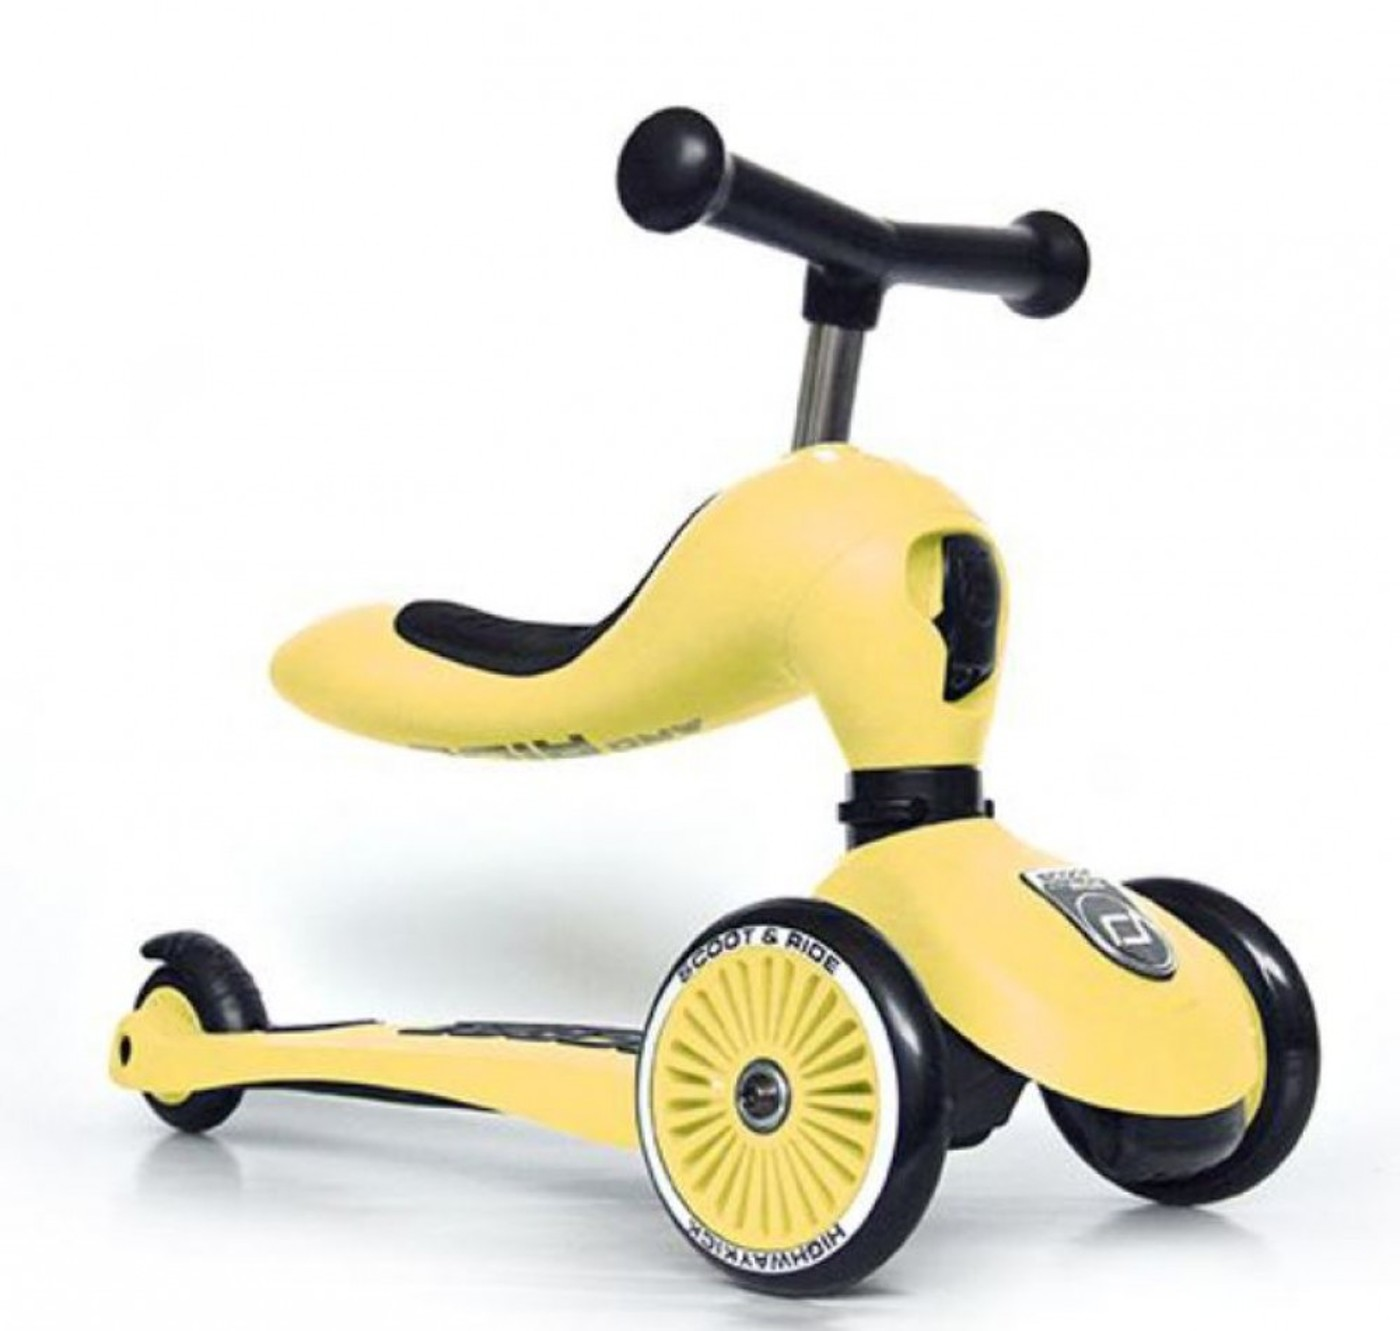 SCOOT & RIDE Highwaykick 1 - Kinder